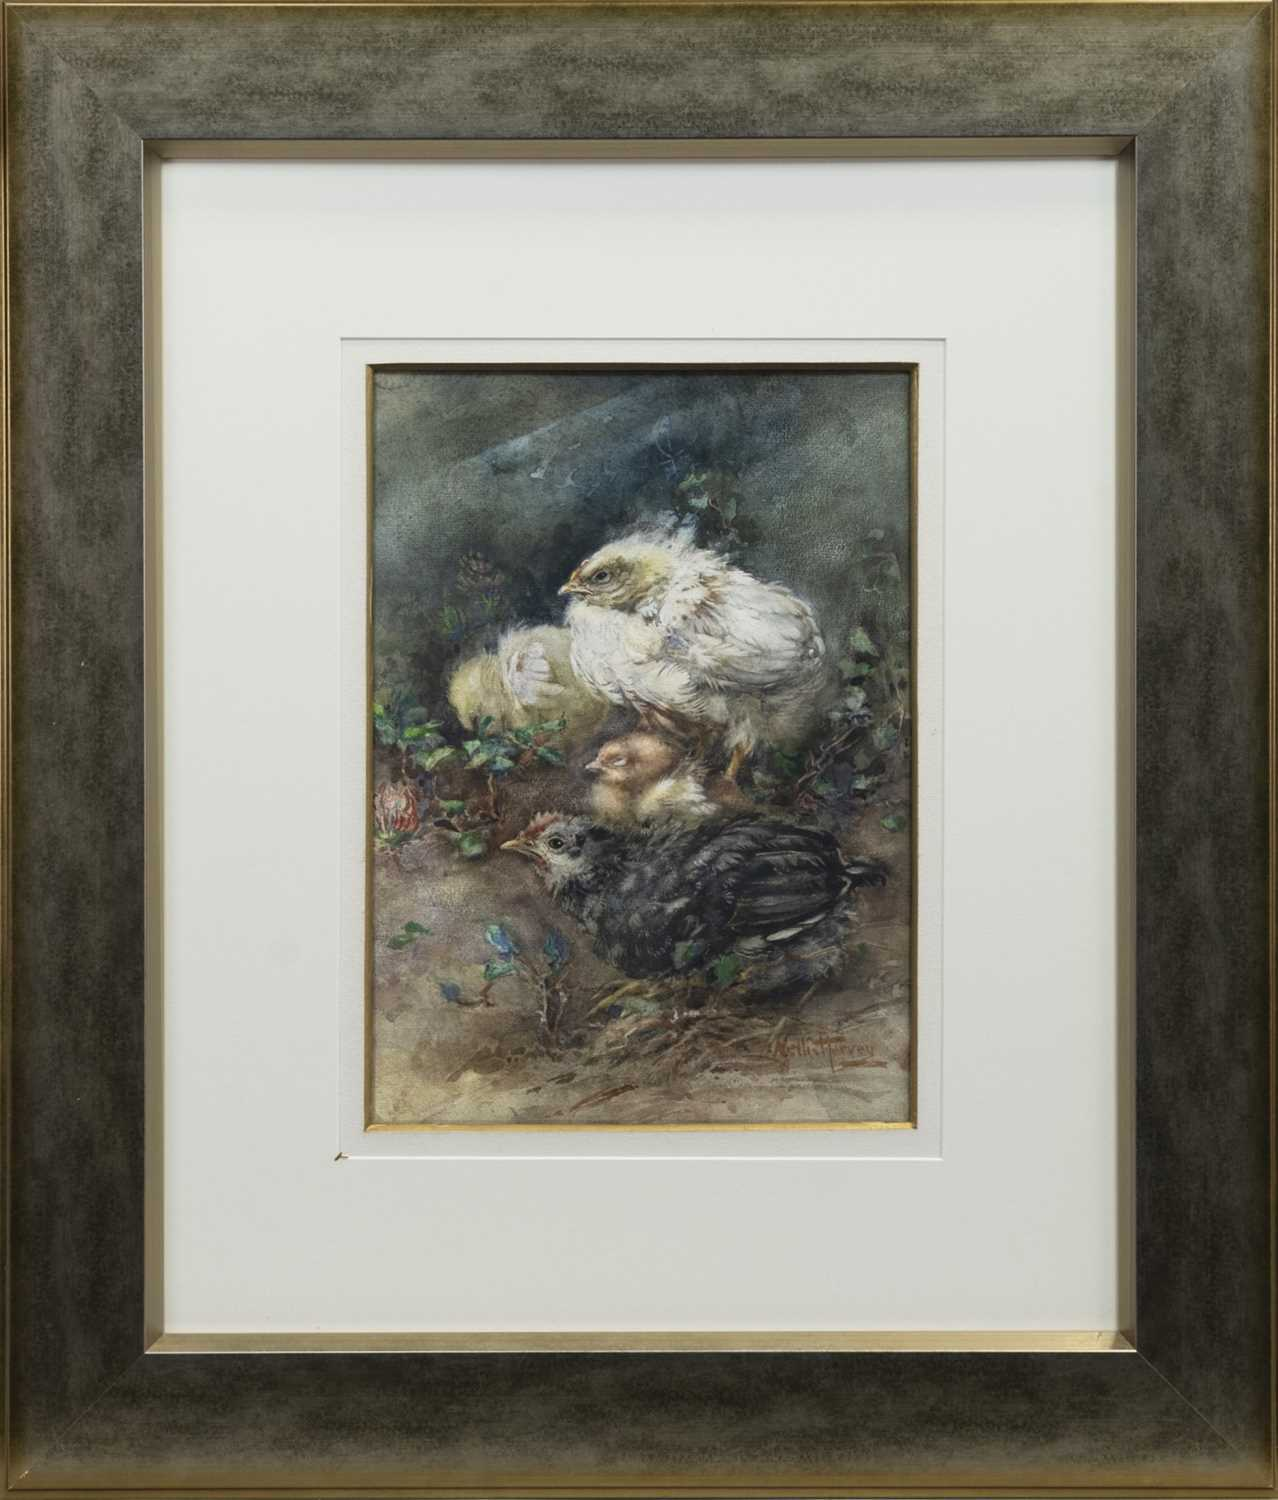 Lot 26 - CHICKS, A WATERCOLOUR BY NELLIE ELLEN HARVEY